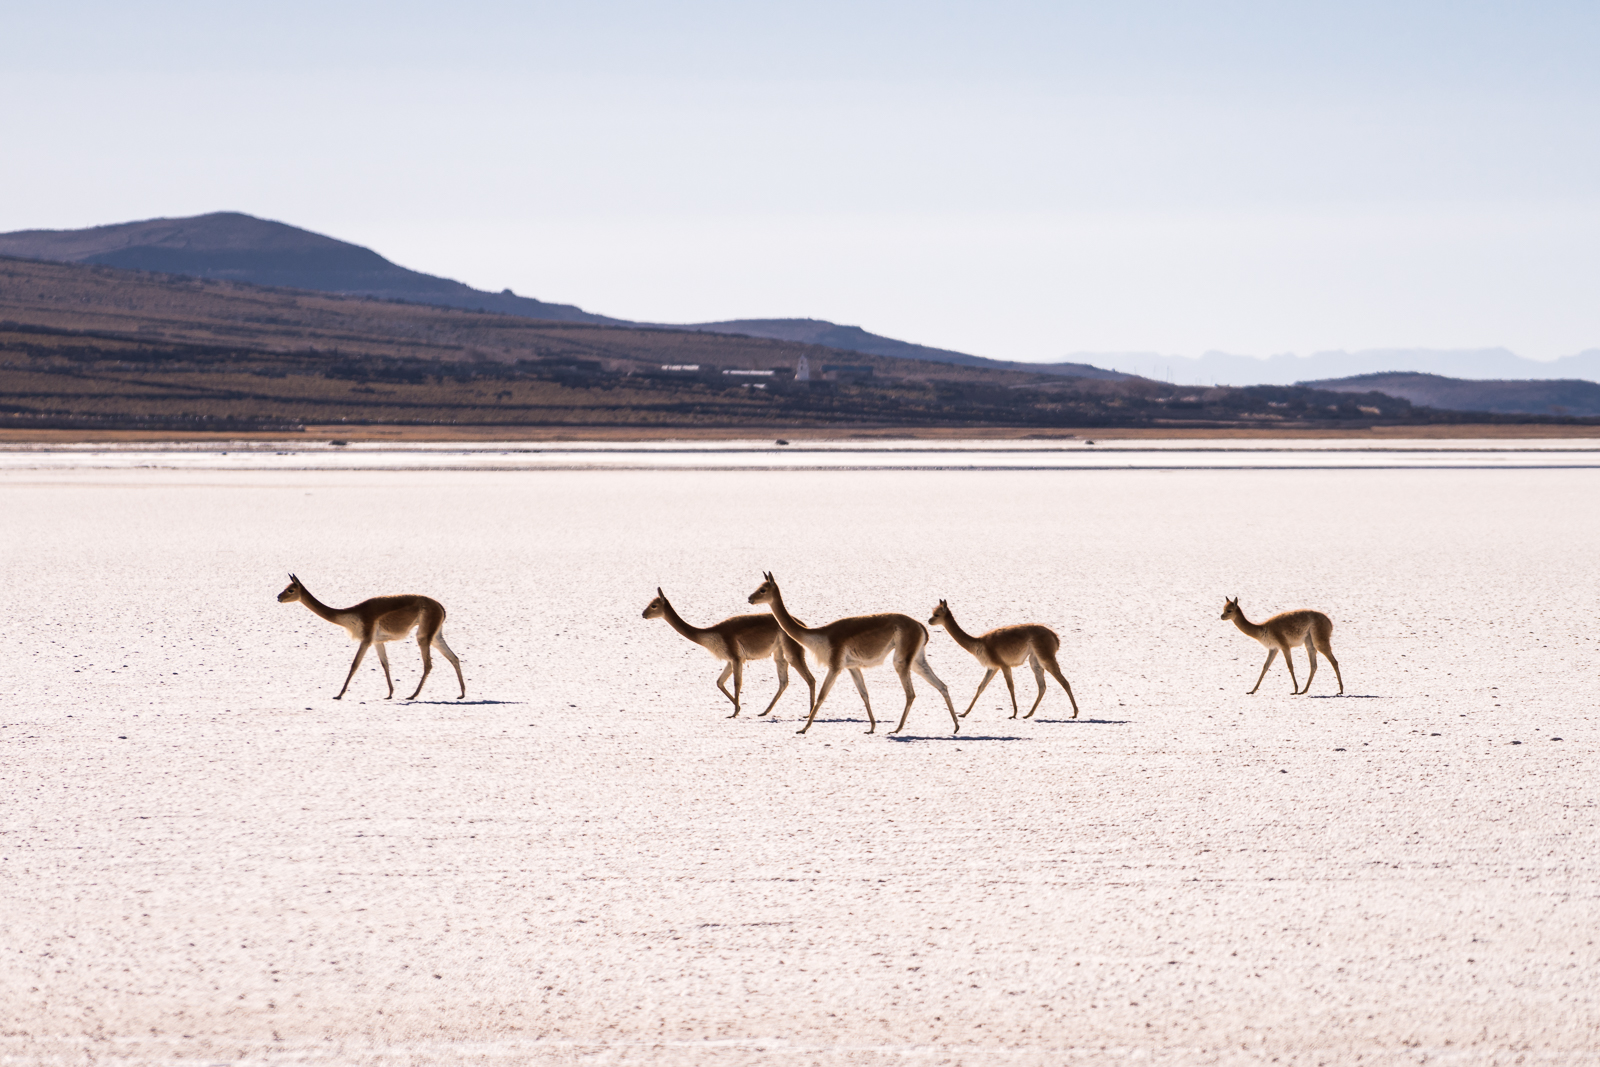 Vicuñas making their way through the desert